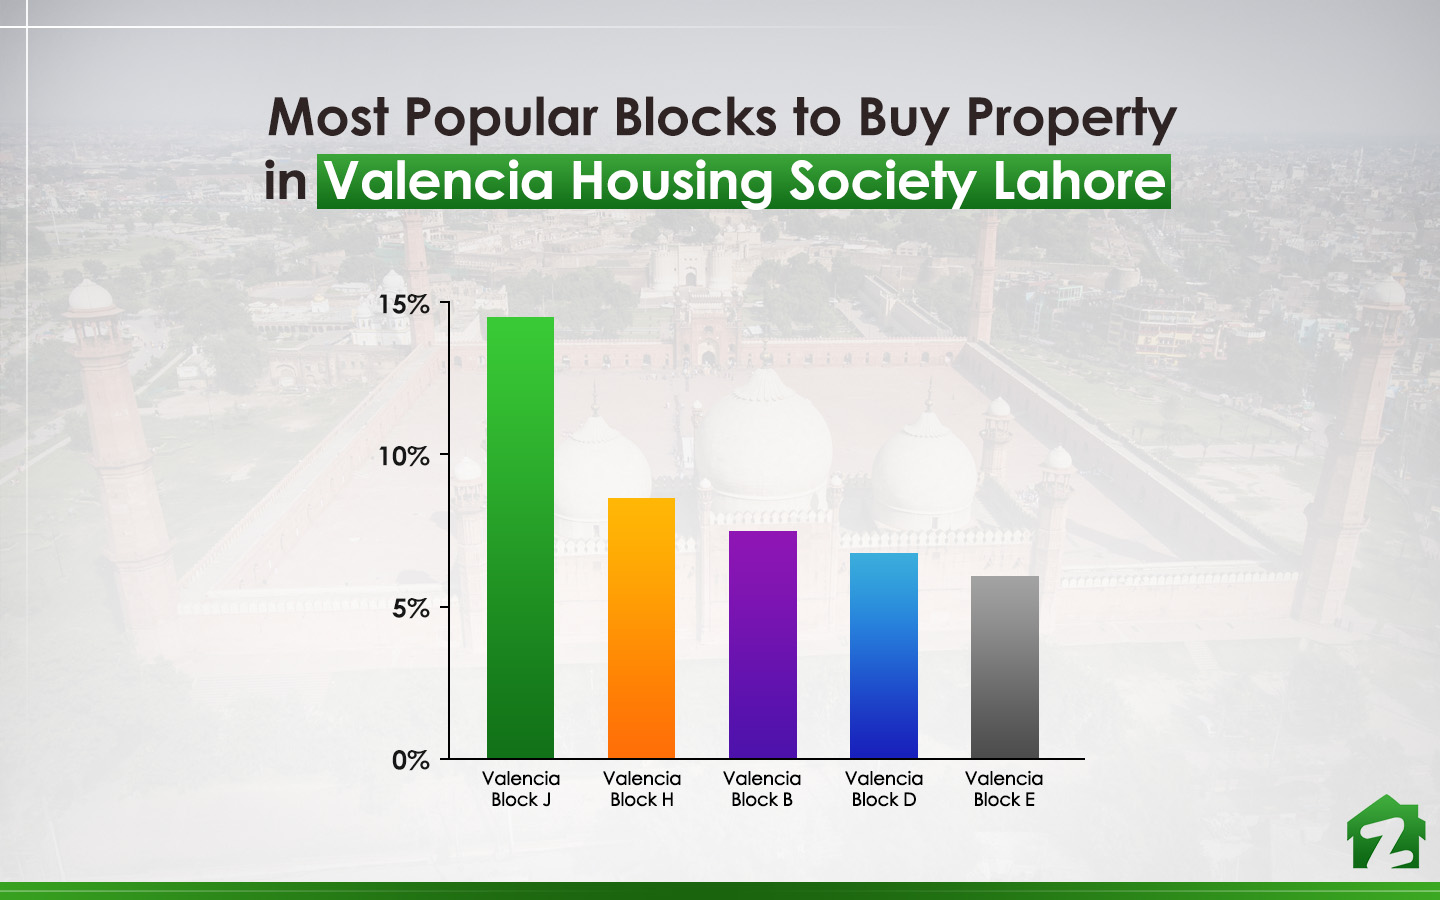 Most popular blocks among buyers interested in Valencia Housing Lahore